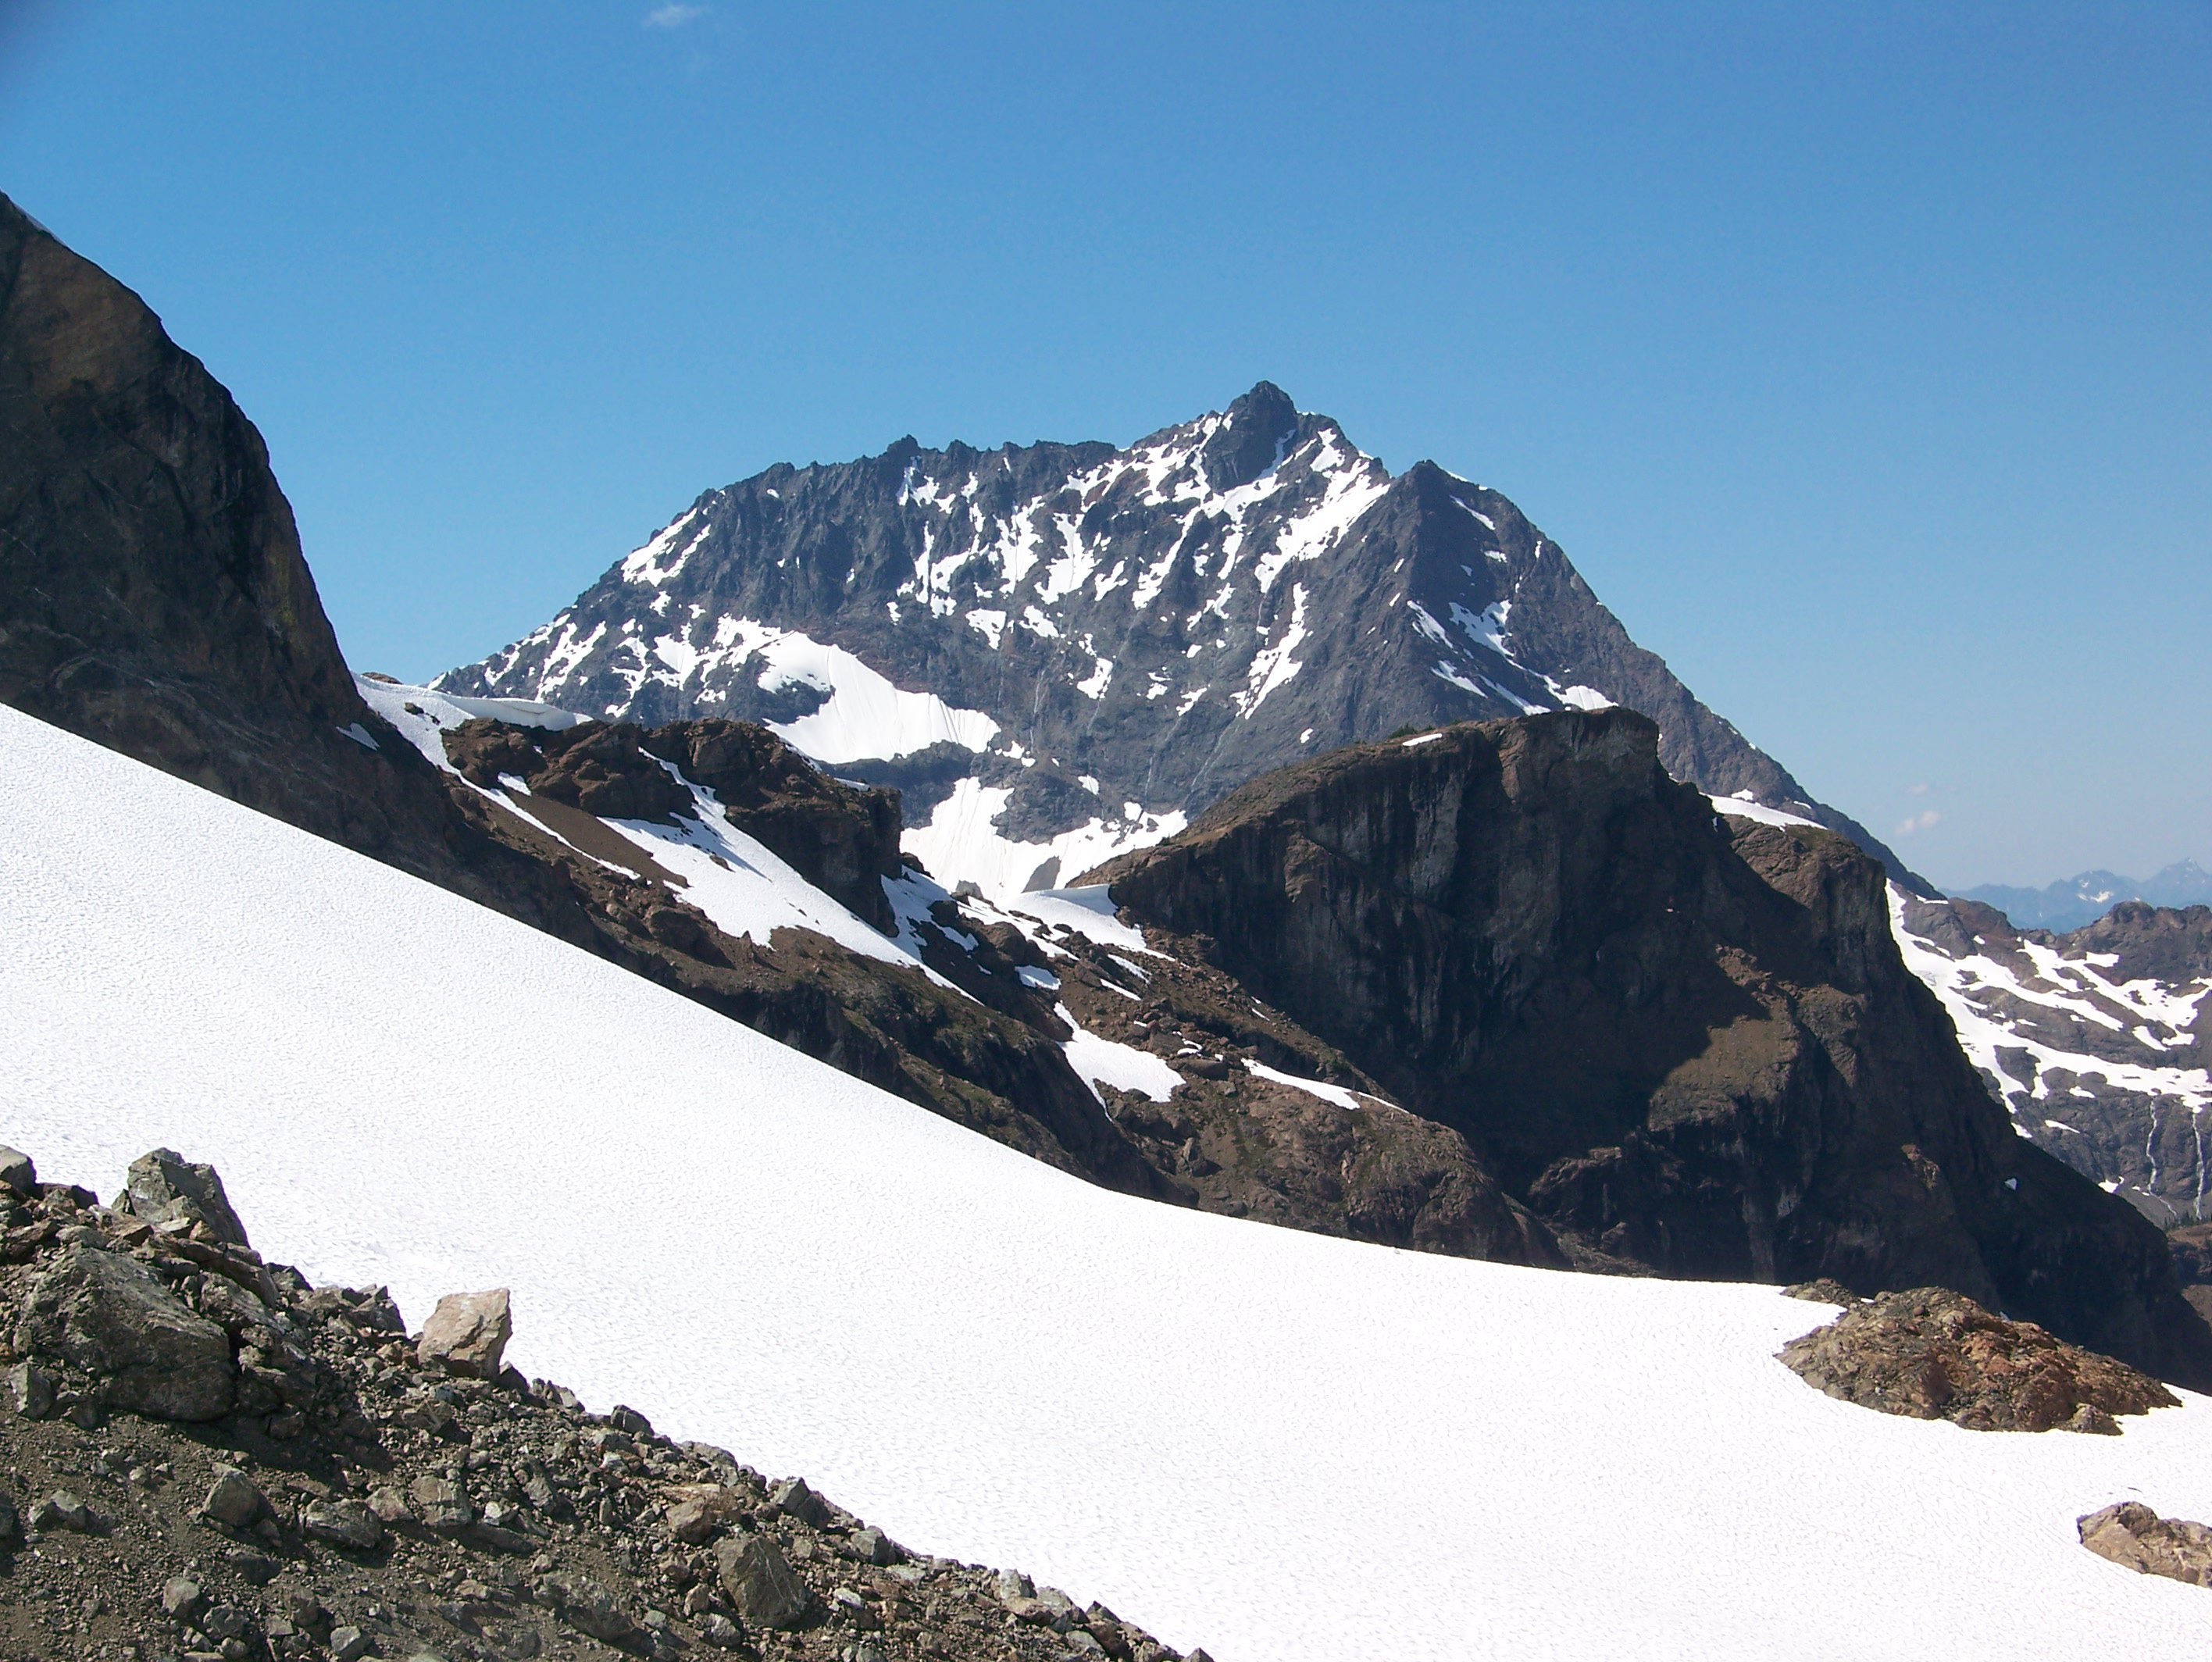 The Crest of the North Cascades: Crater Mountain